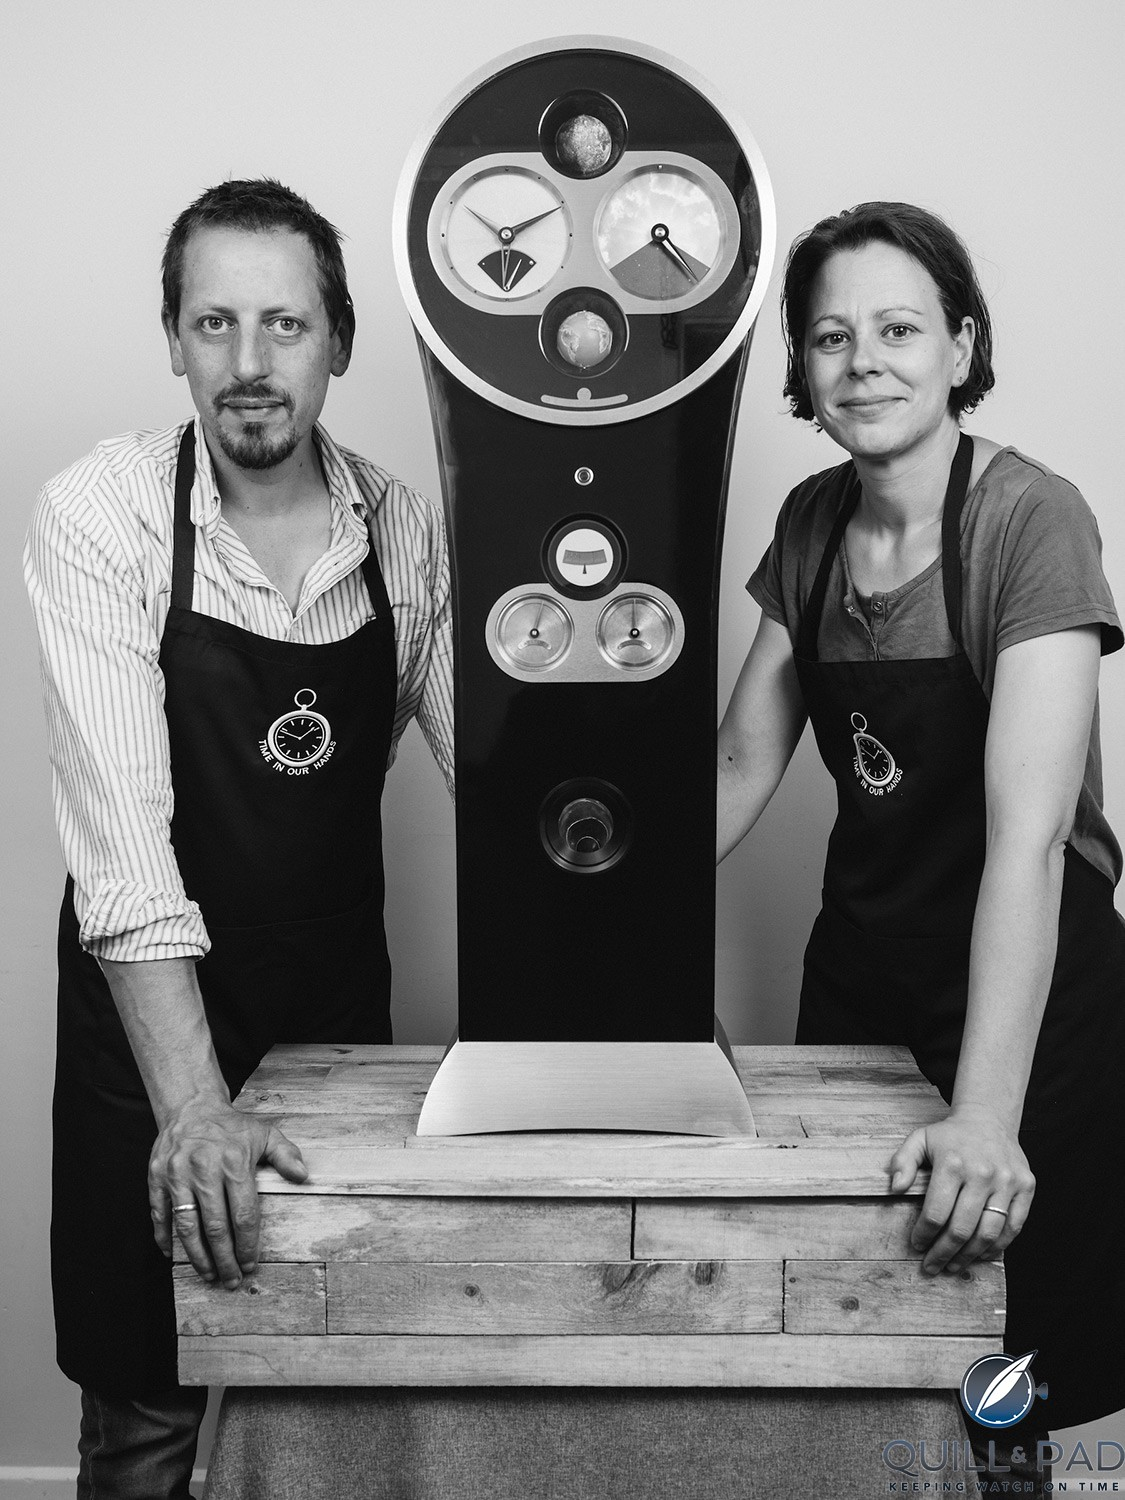 George and Cornelia de Fossard and their Solar Time Clock